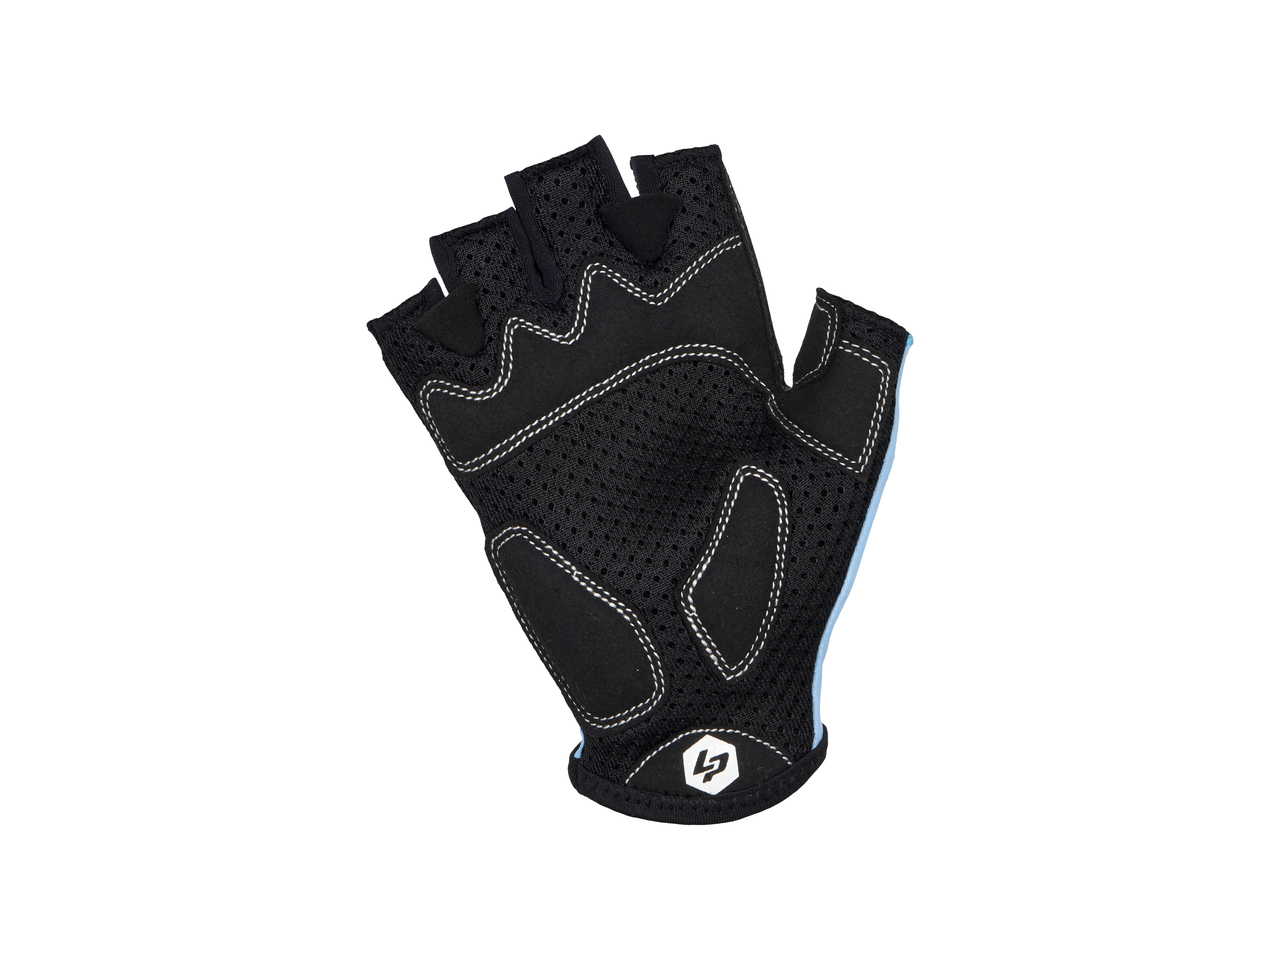 Lapierre Madeleine women's cycling gloves - back